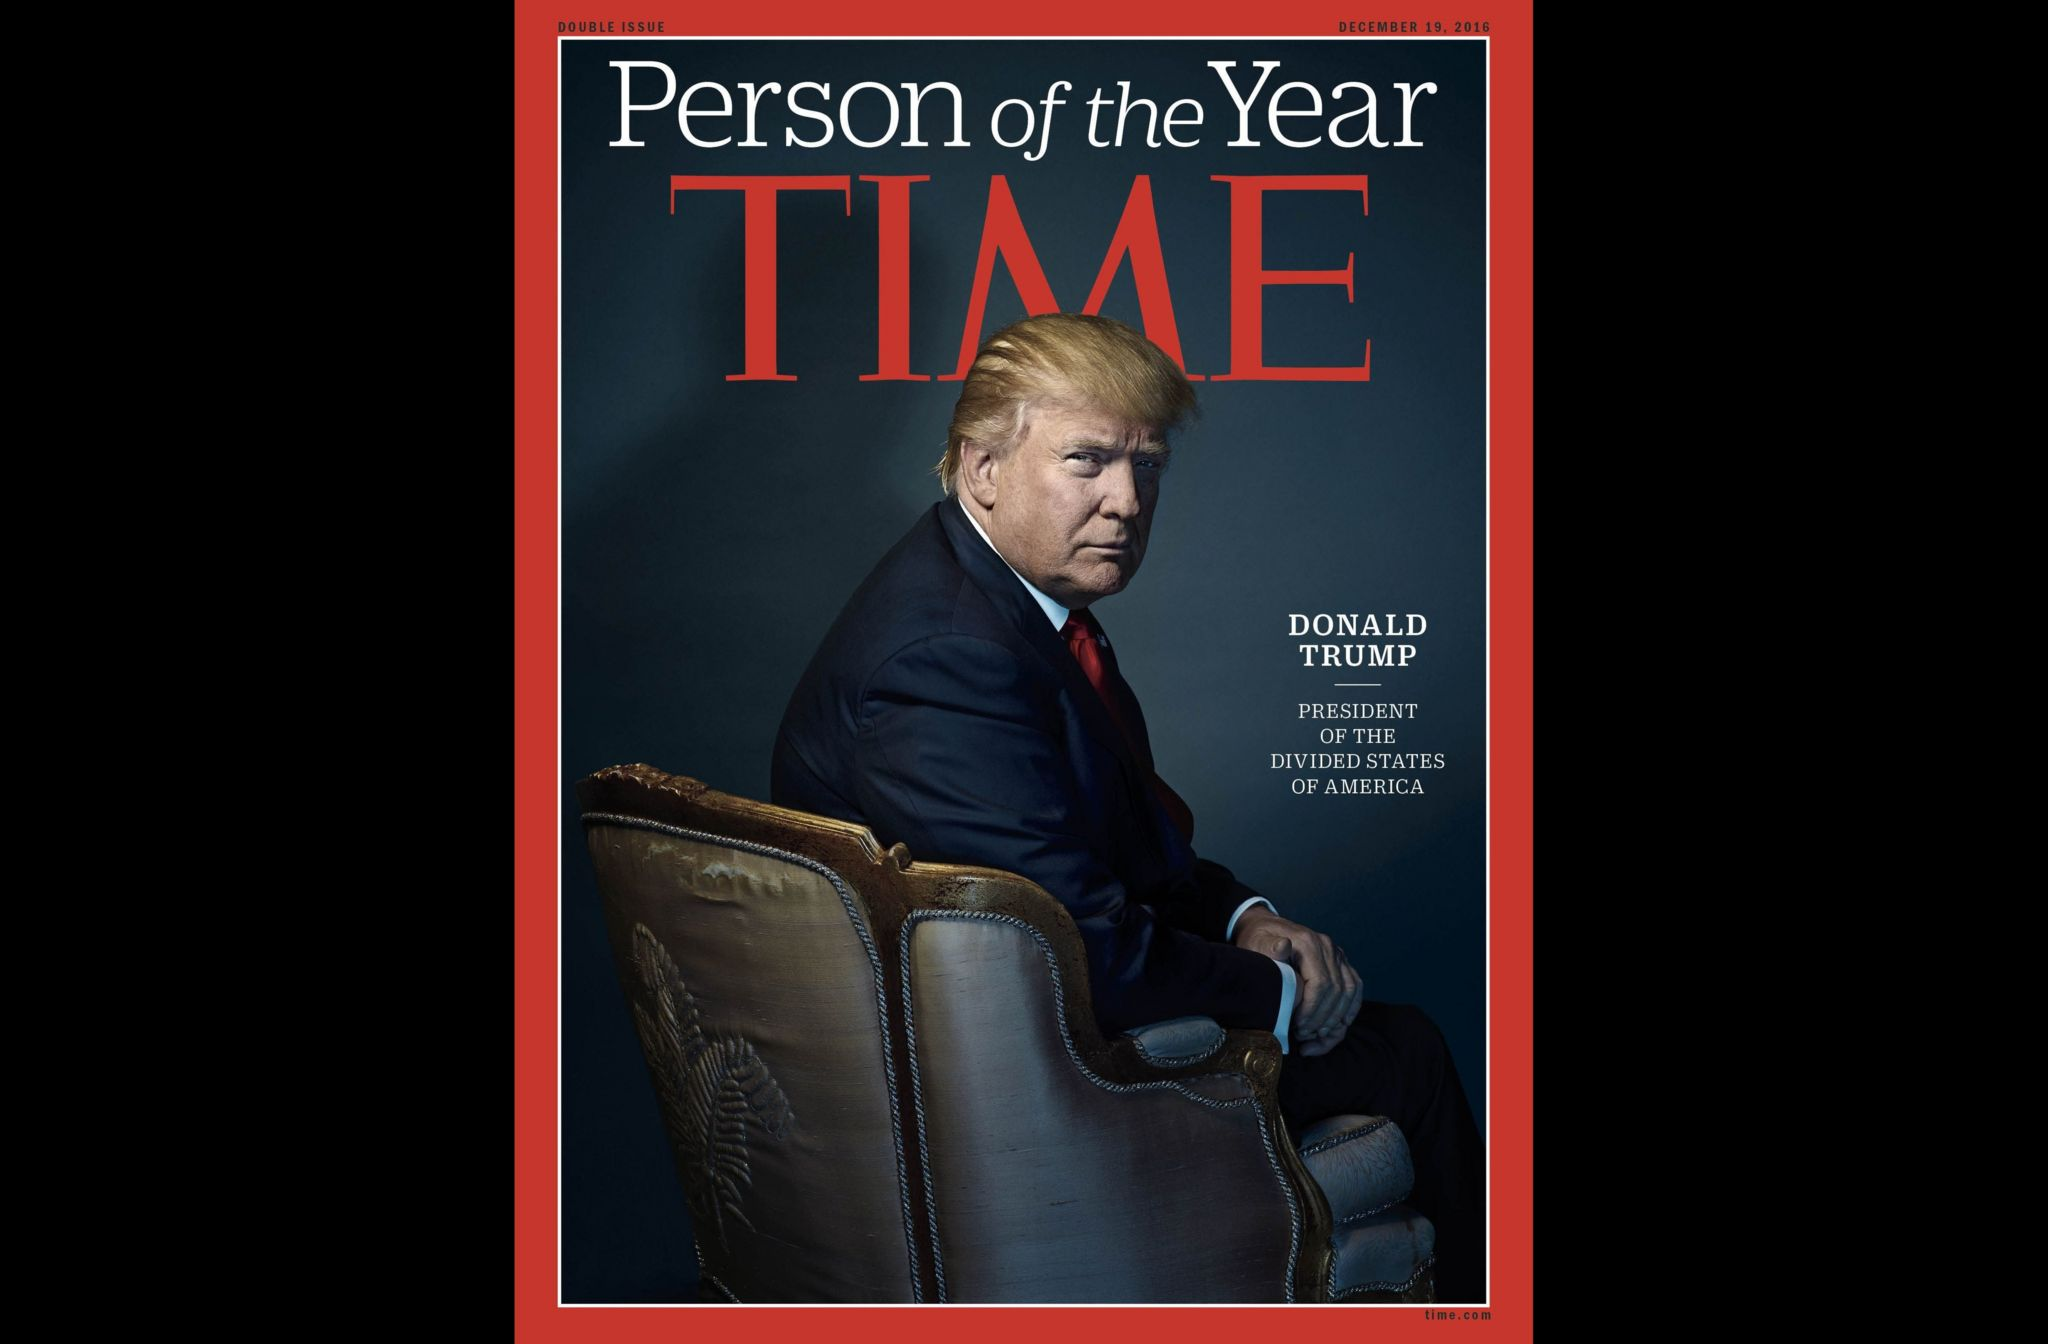 Donald Trump on the front of Time Magazine